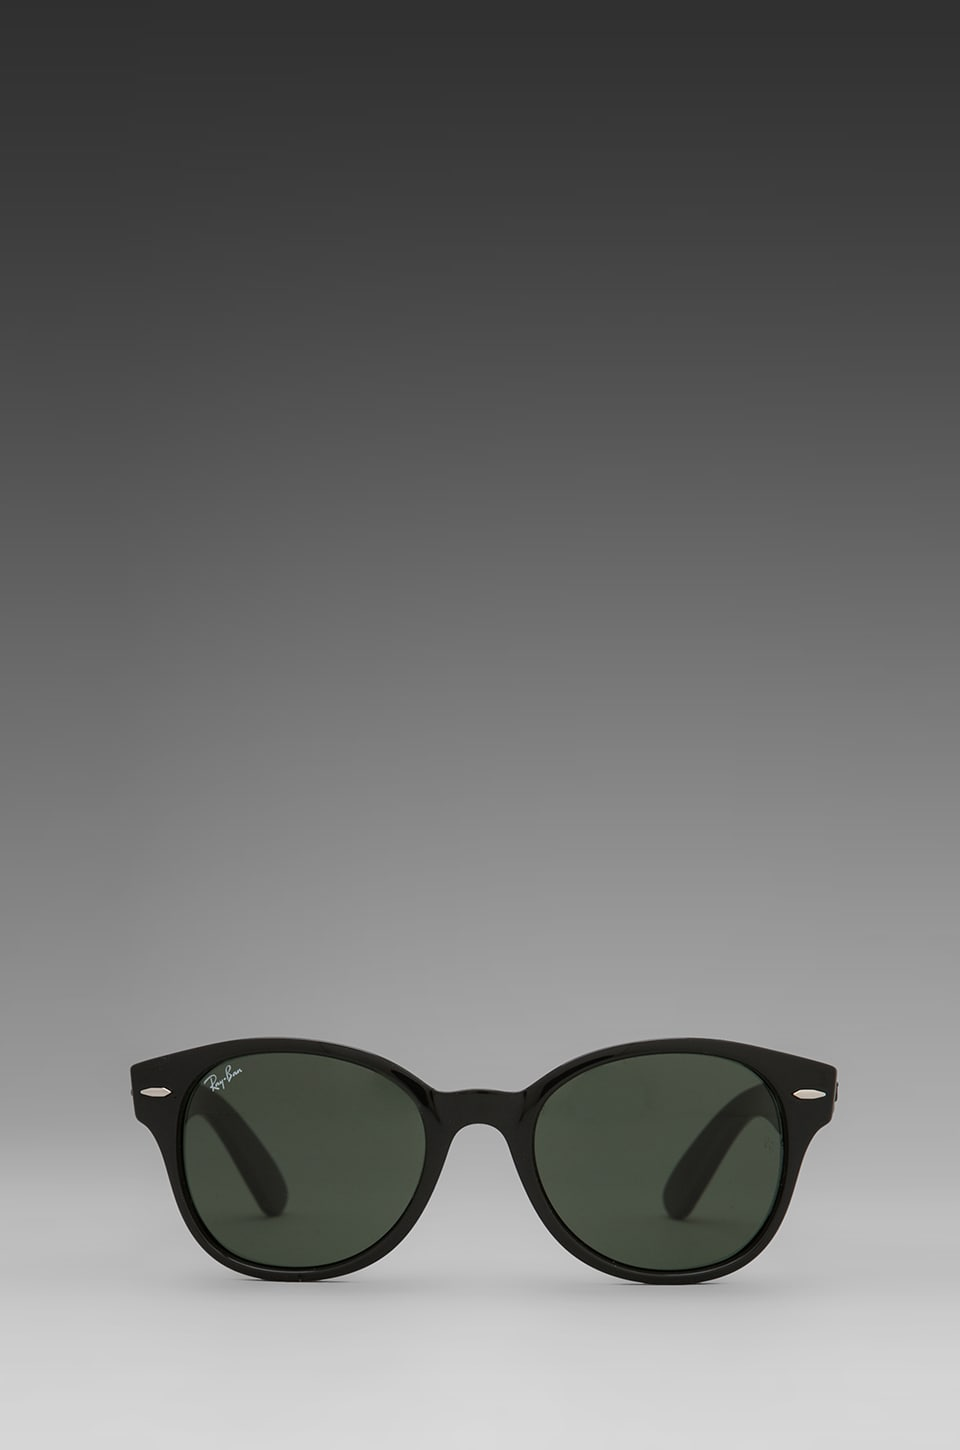 Ray-Ban High Street Wayfarer in Black